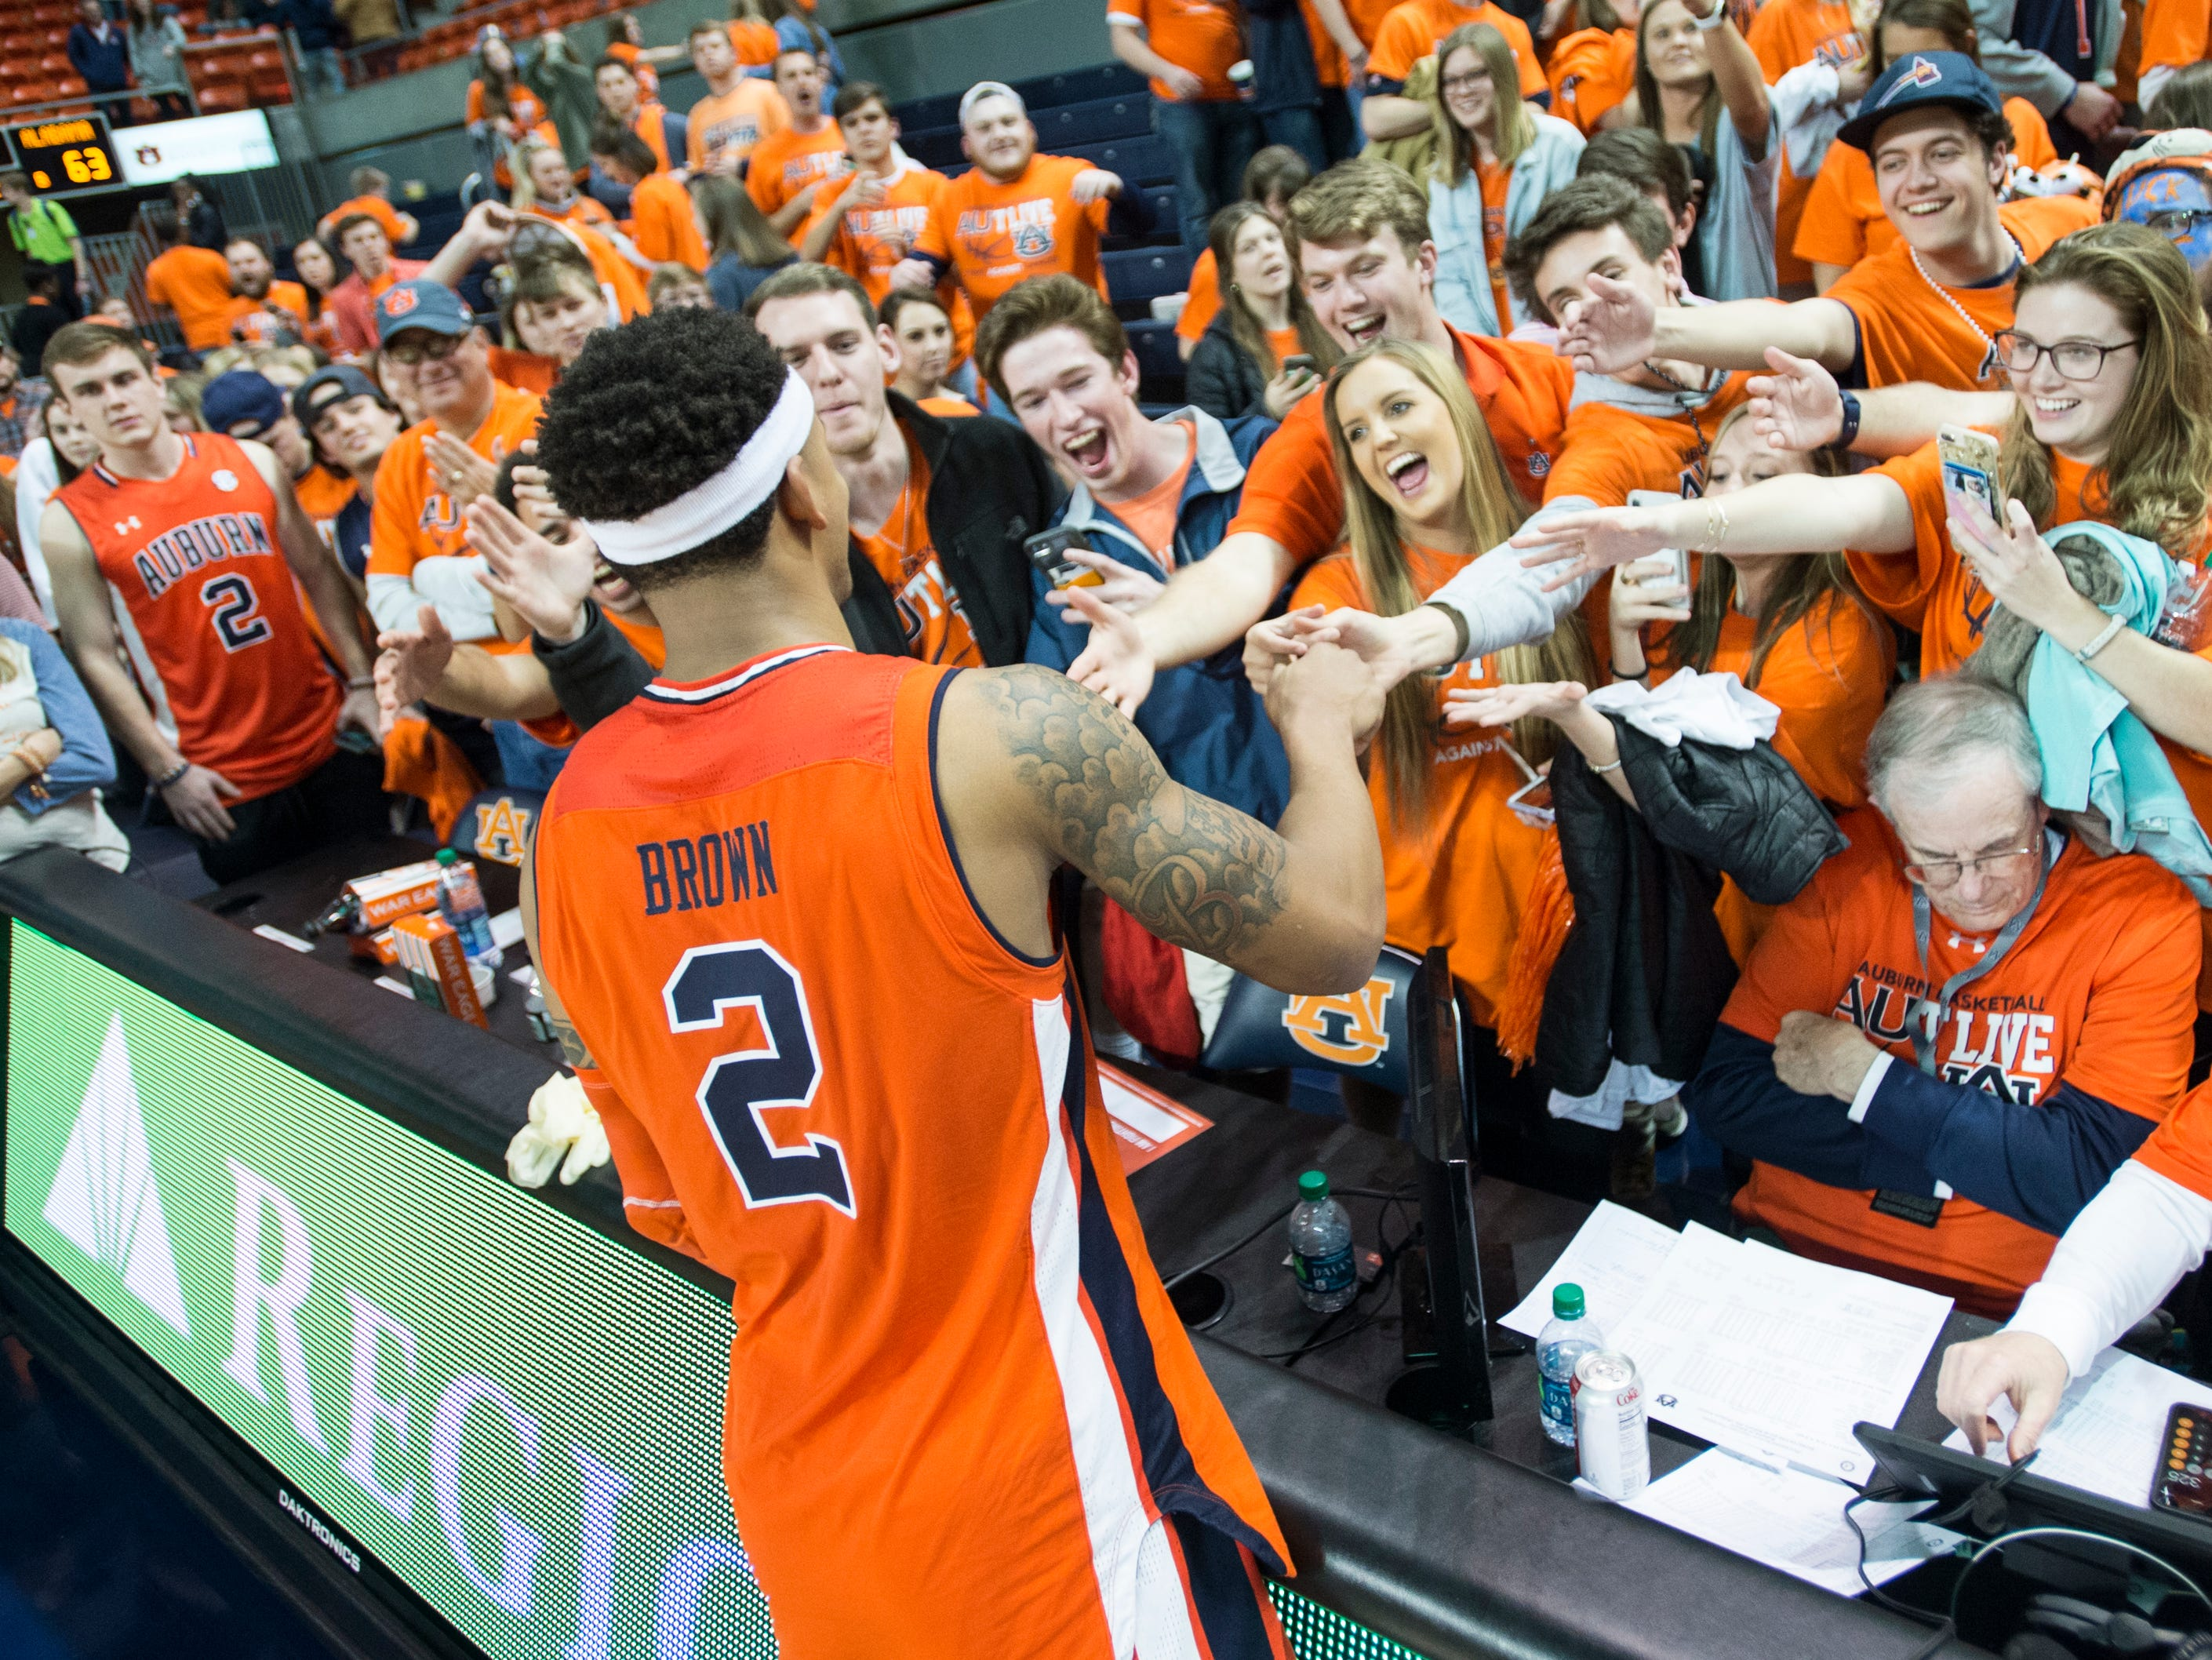 Auburn guard Bryce Brown (2) greets fans after the game at Auburn Arena in Auburn, Ala., on Saturday, Feb. 2, 2019. Auburn defeated Alabama 84-63.